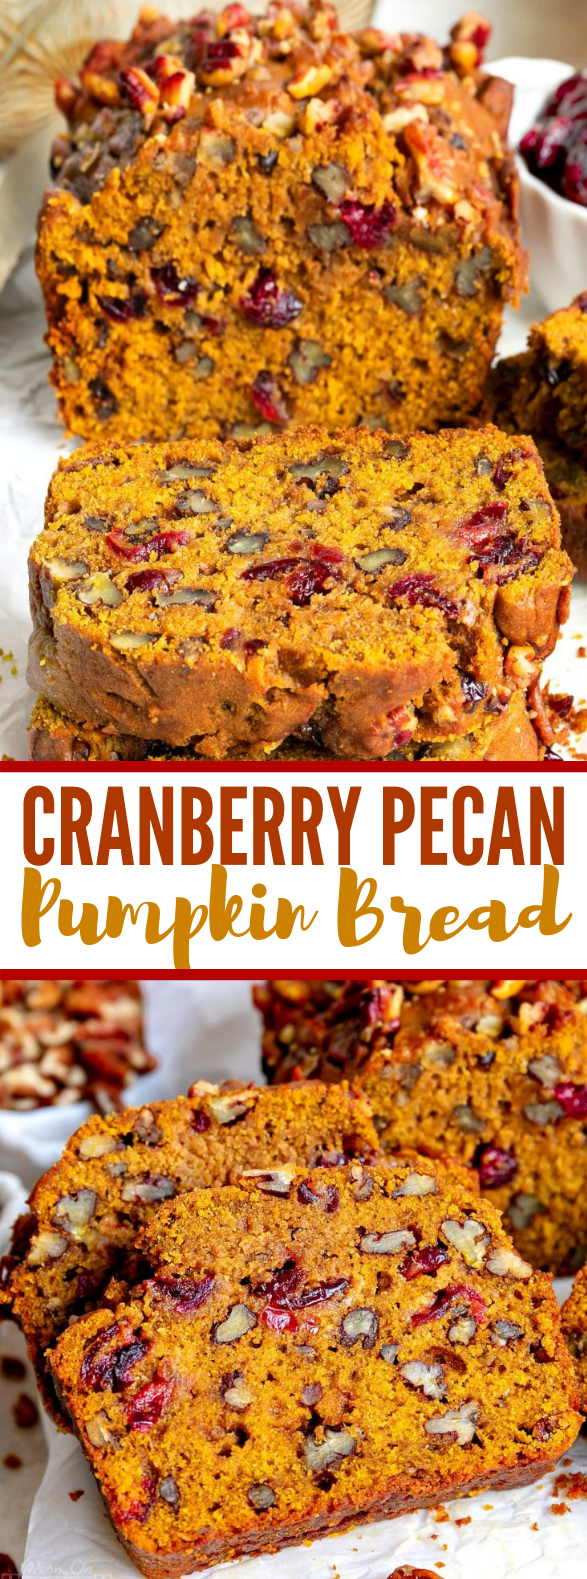 CRANBERRY PECAN PUMPKIN BREAD #thanksgiving #christmas